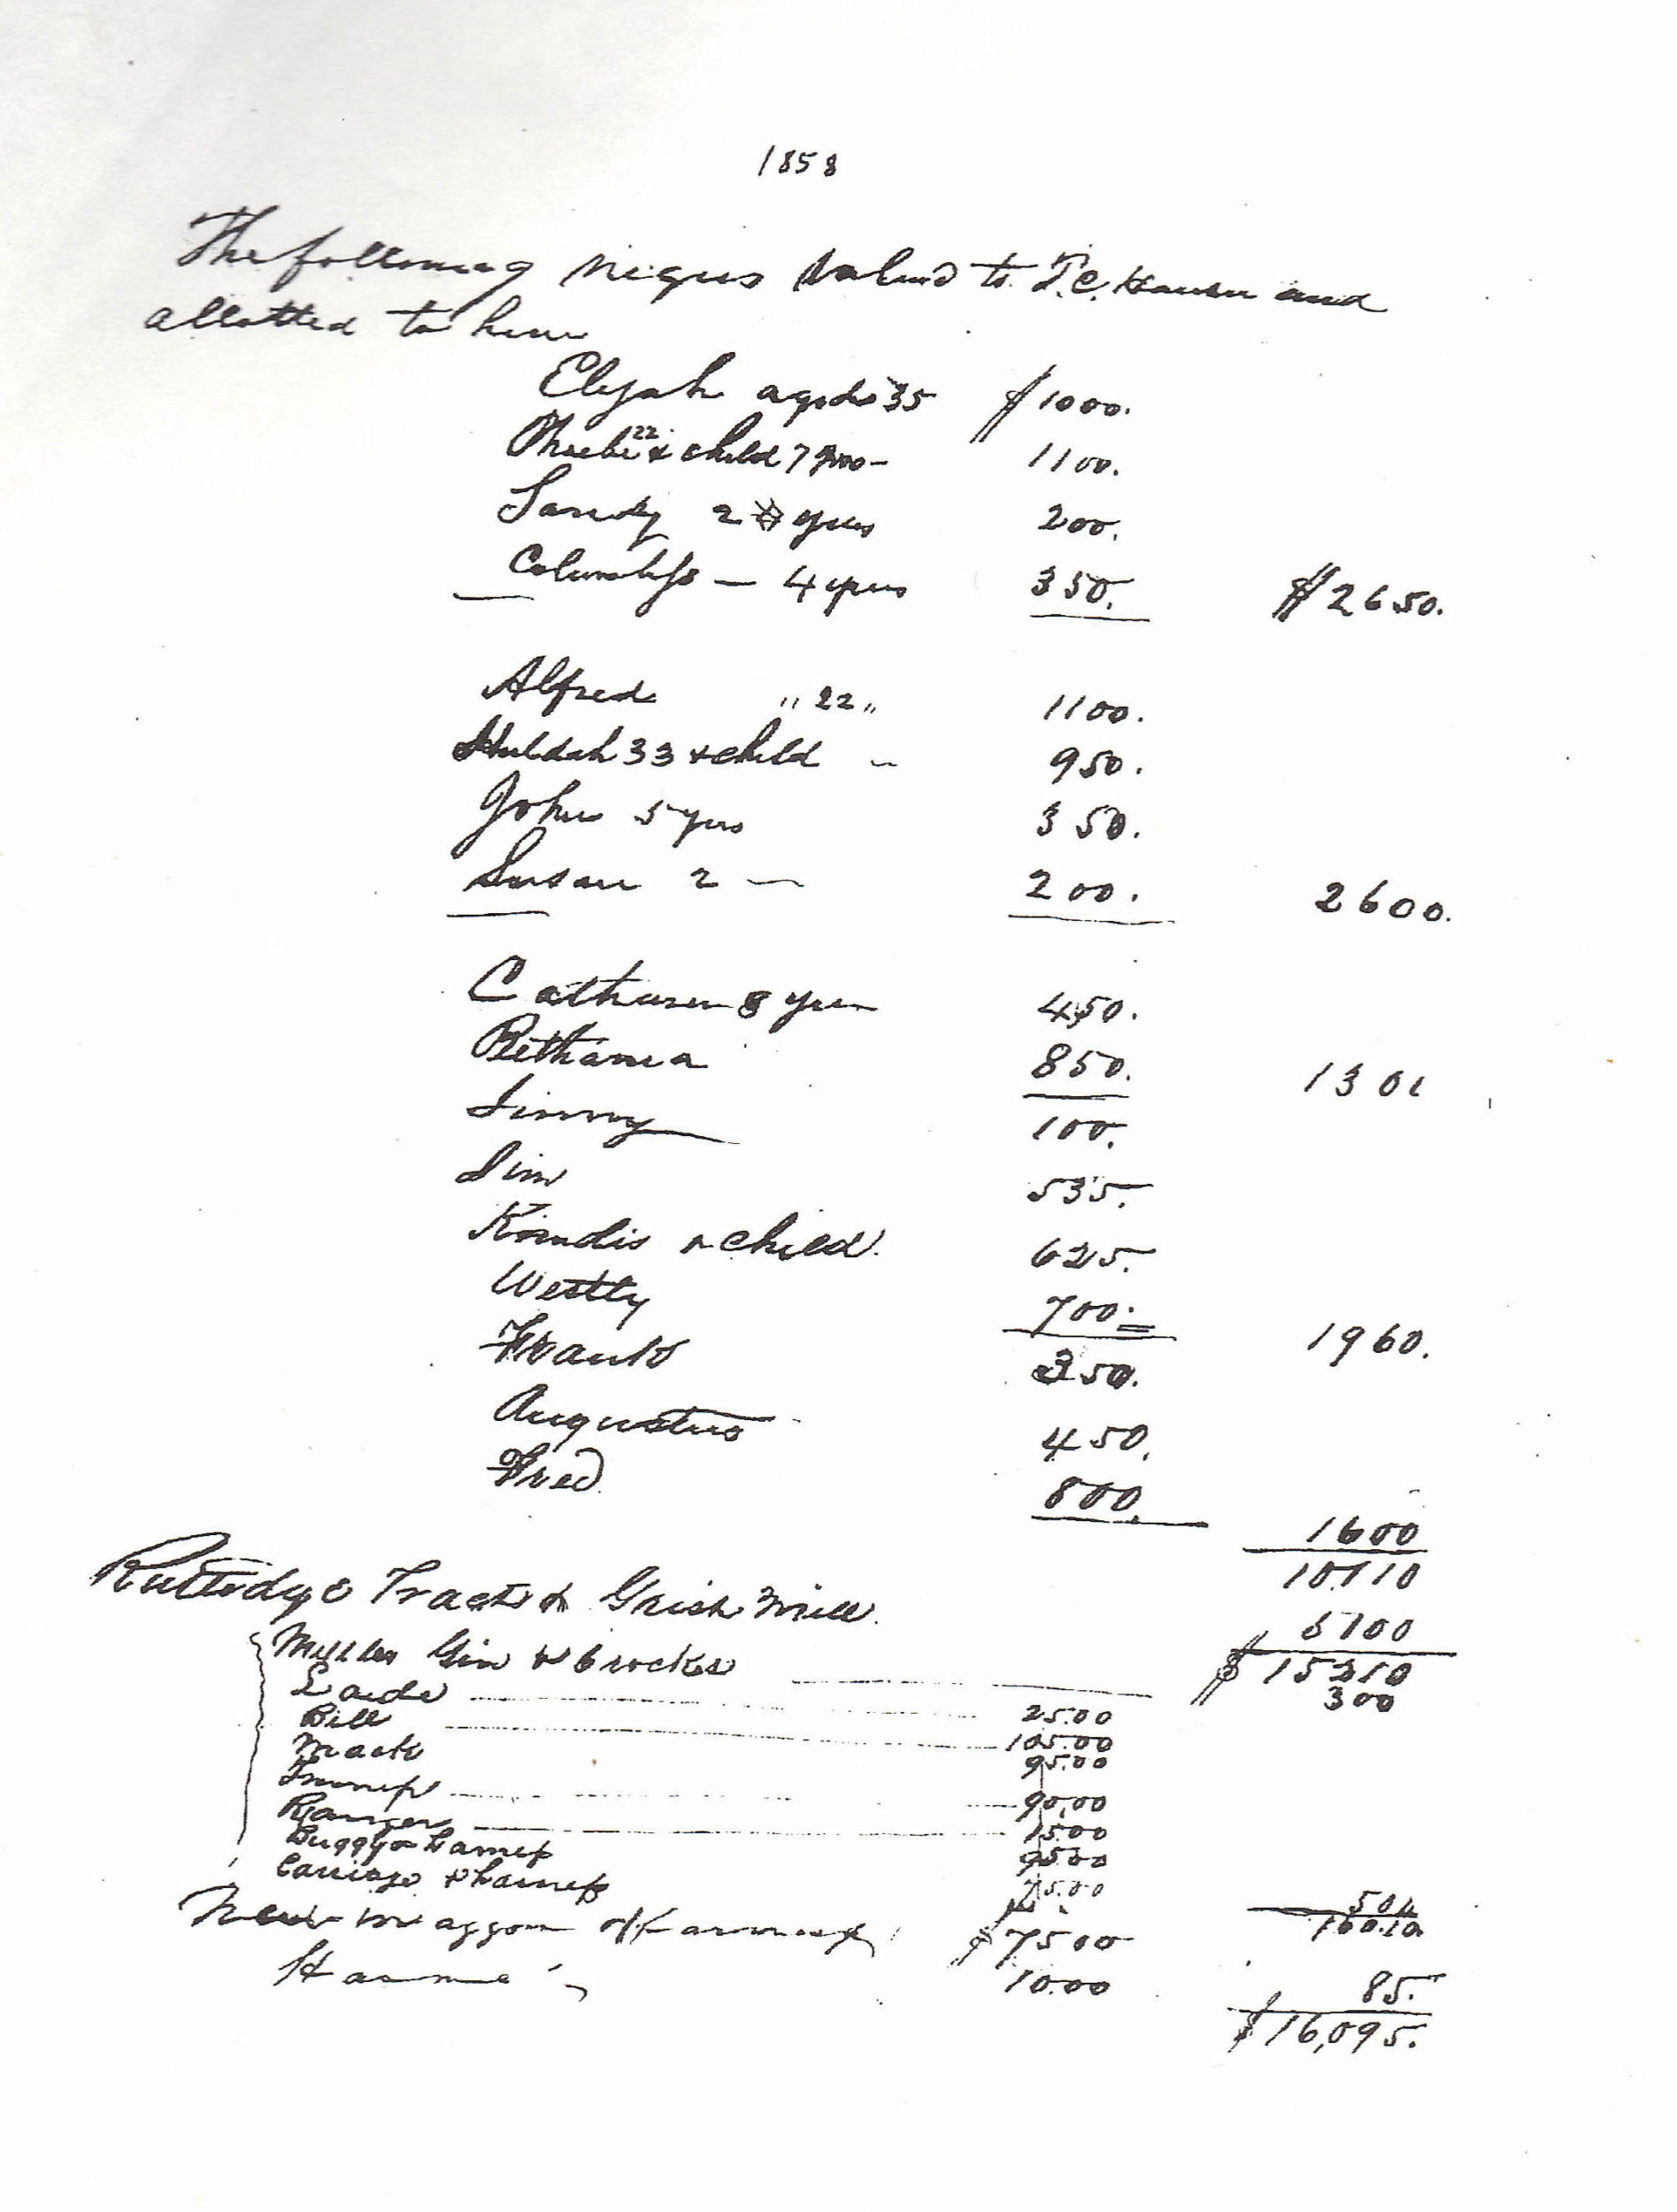 Image of a handwritten document listing names and prices of slaves.